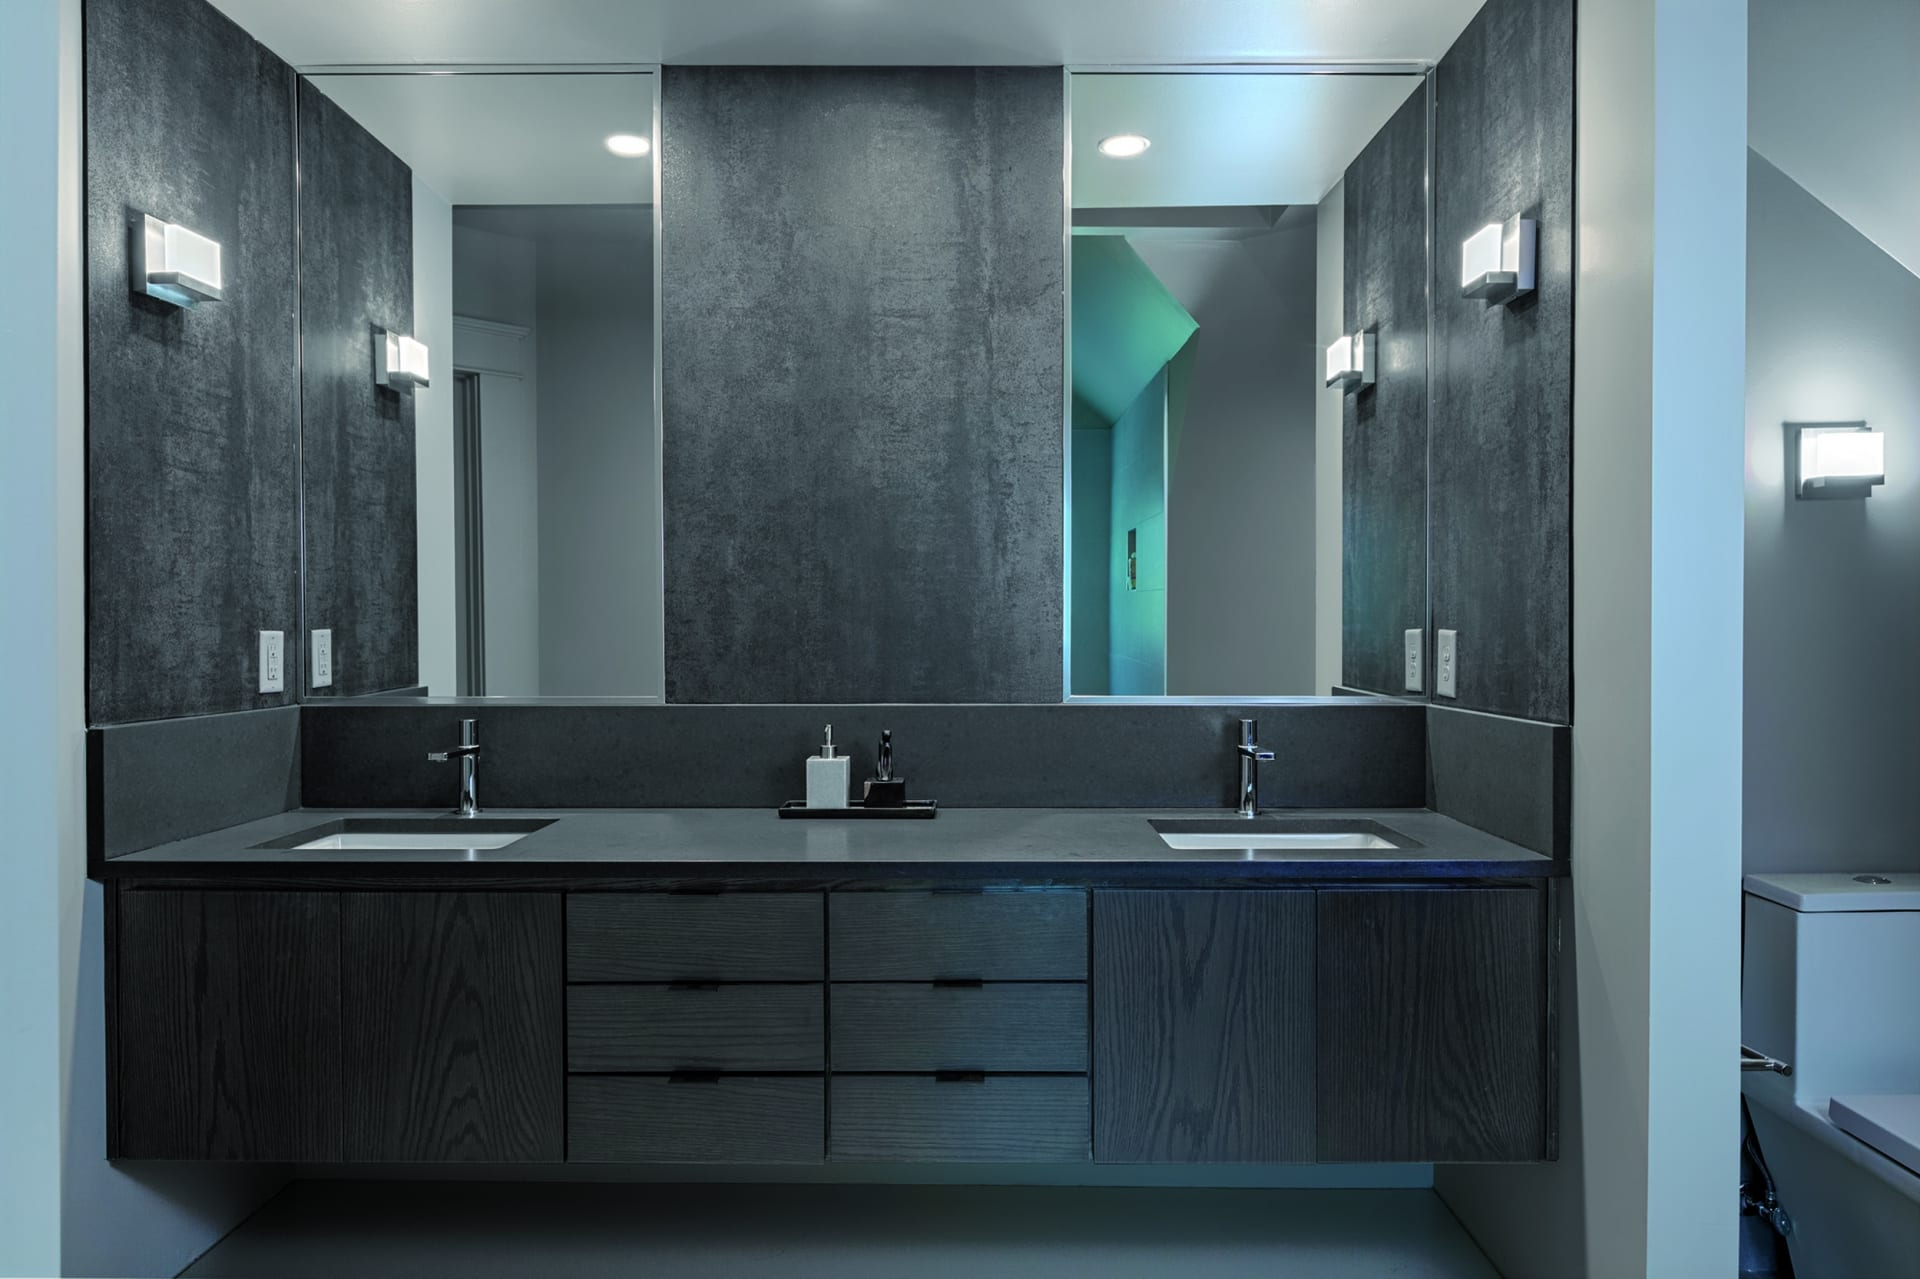 Neolith Iron Grey vloer